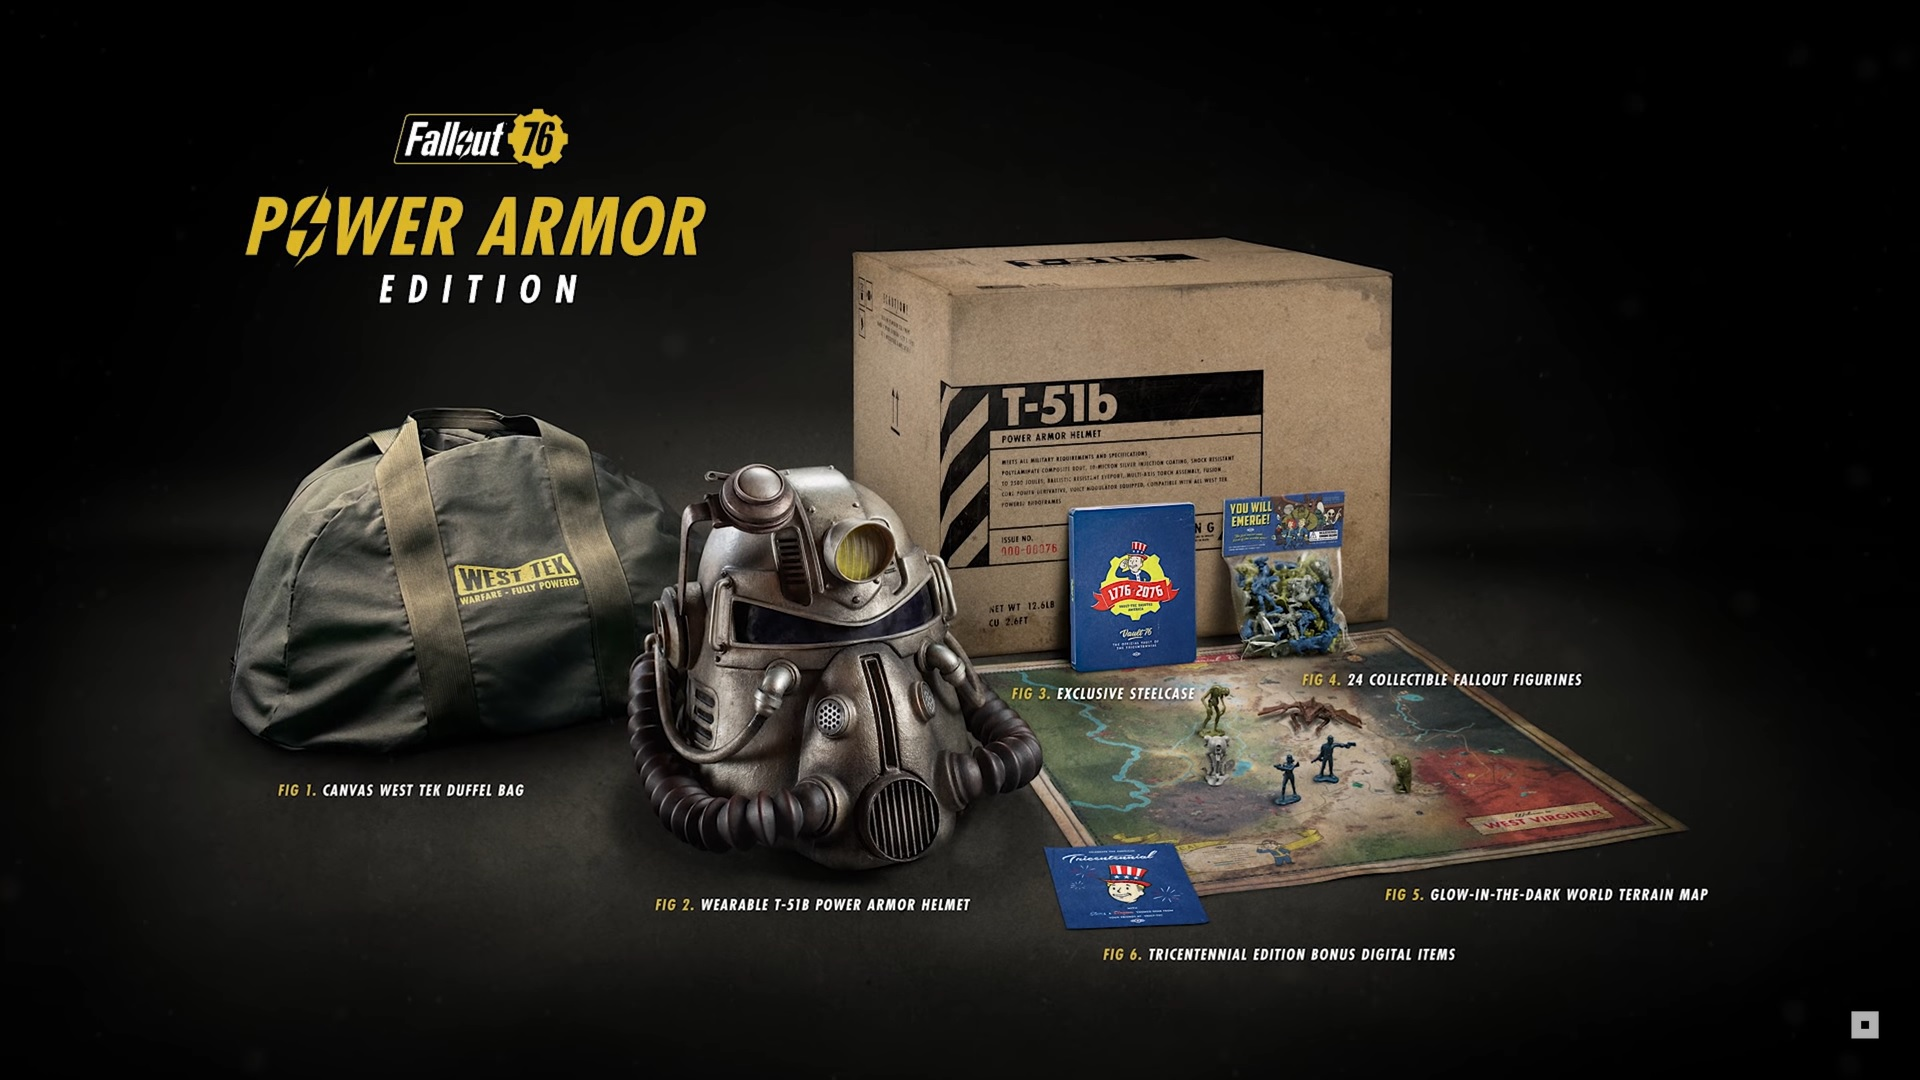 Fallout 76s Collectors Edition Includes A Wearable Helmet